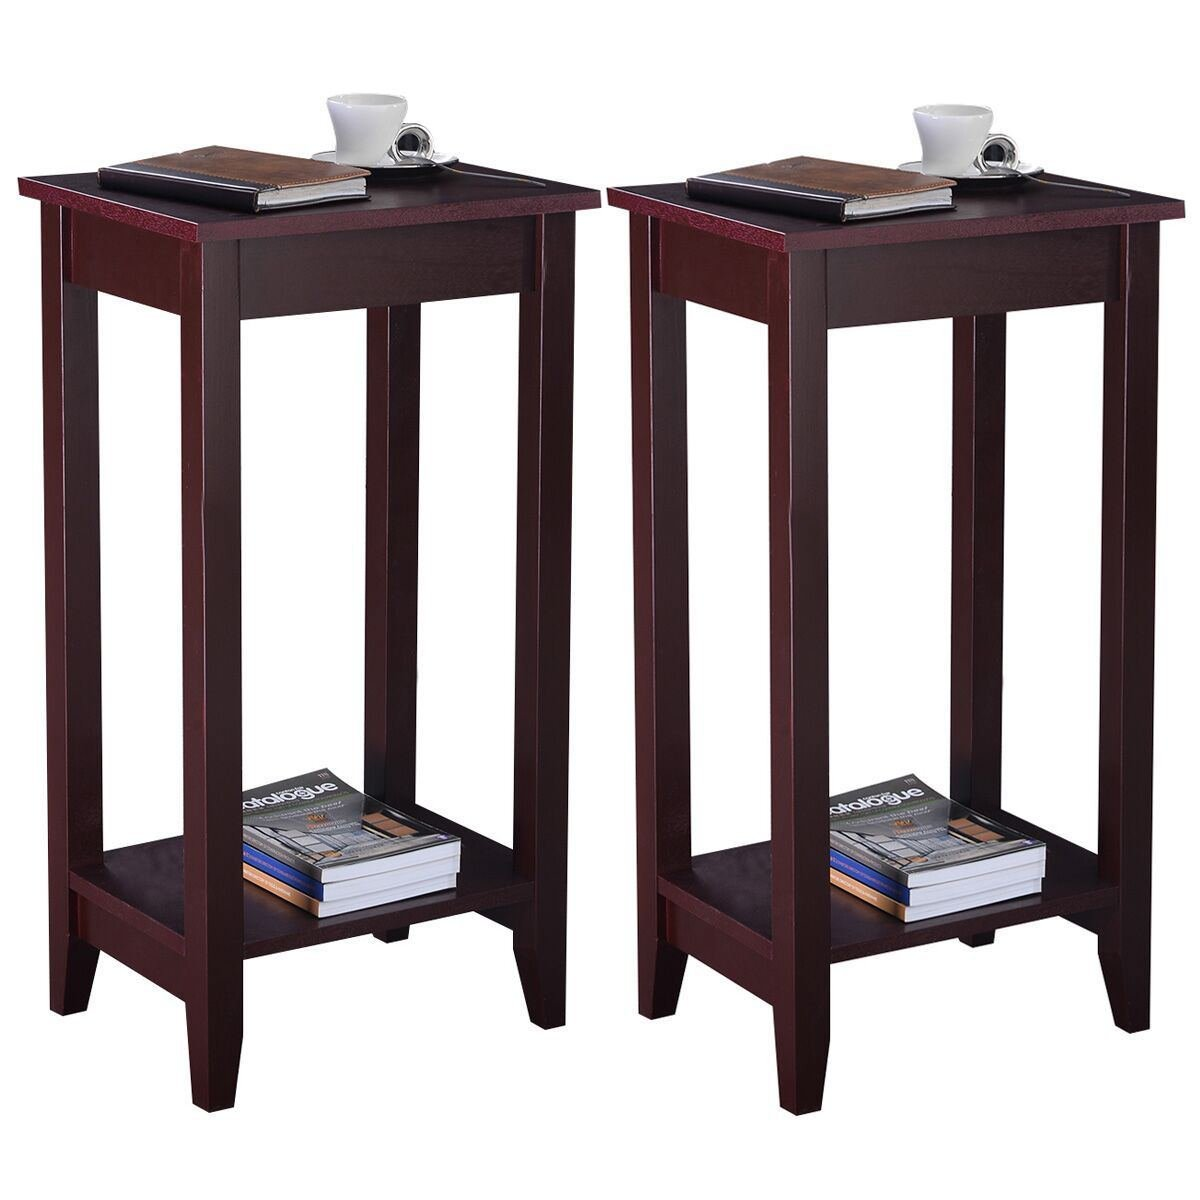 MasterPanel - Set of 2 Tall End Table Coffee Stand Night Side Accent Furniture Brown #TP3240 by MasterPanel